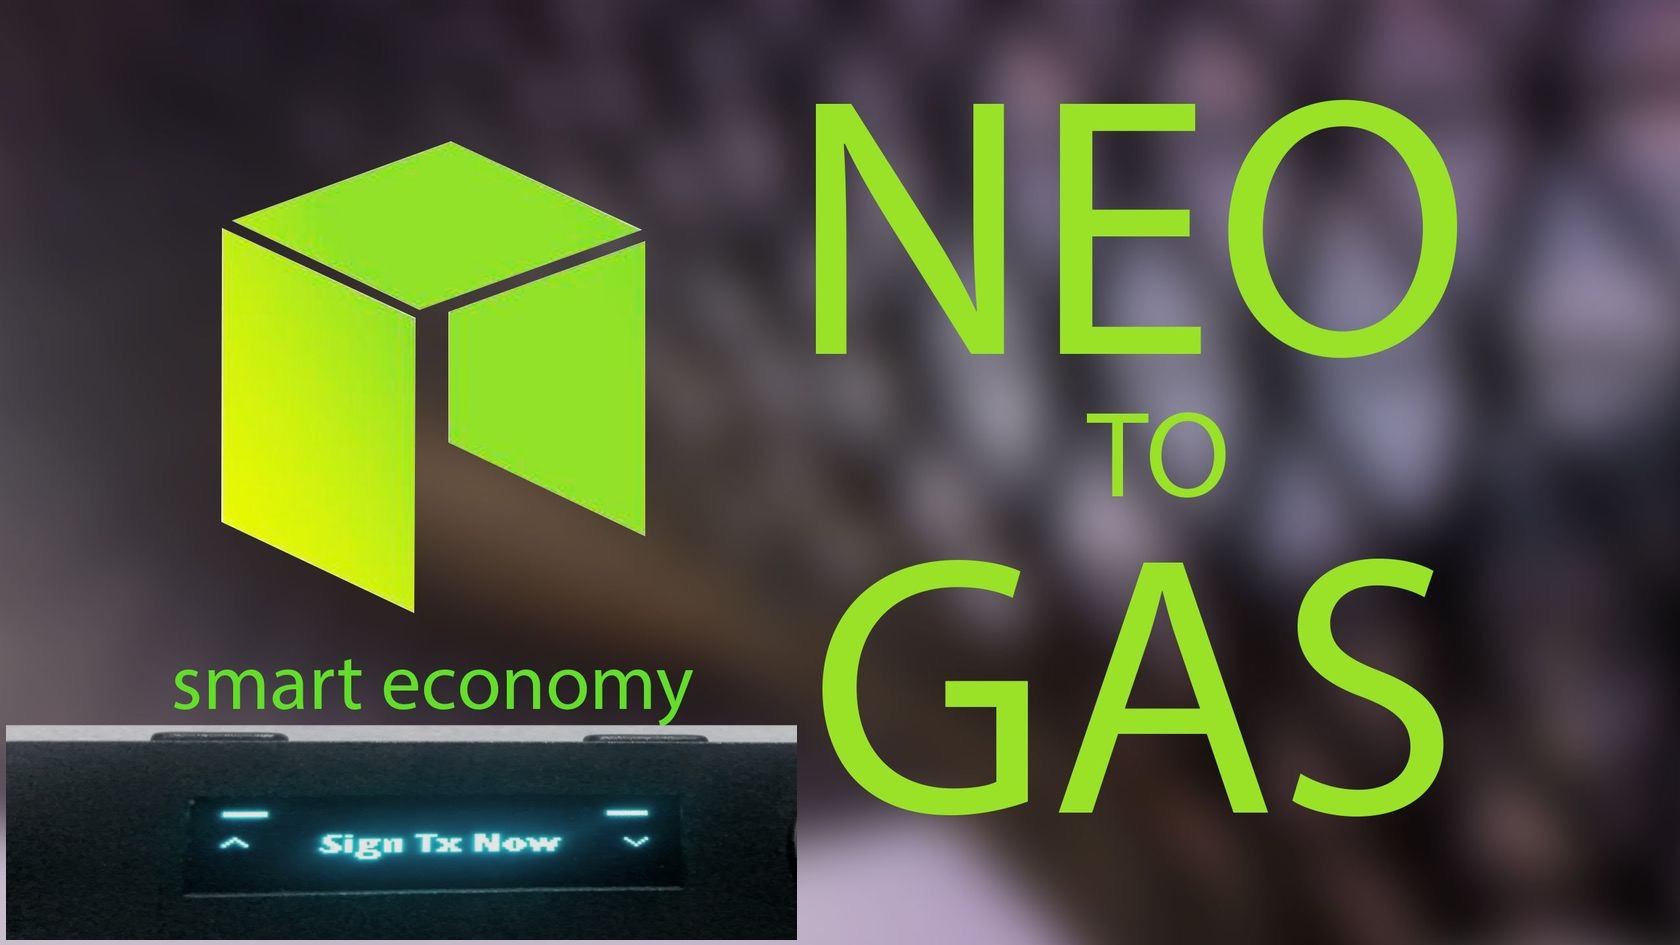 The Complete Guide to Use NEO in Ledger Wallet and Claim Your Free GAS Main